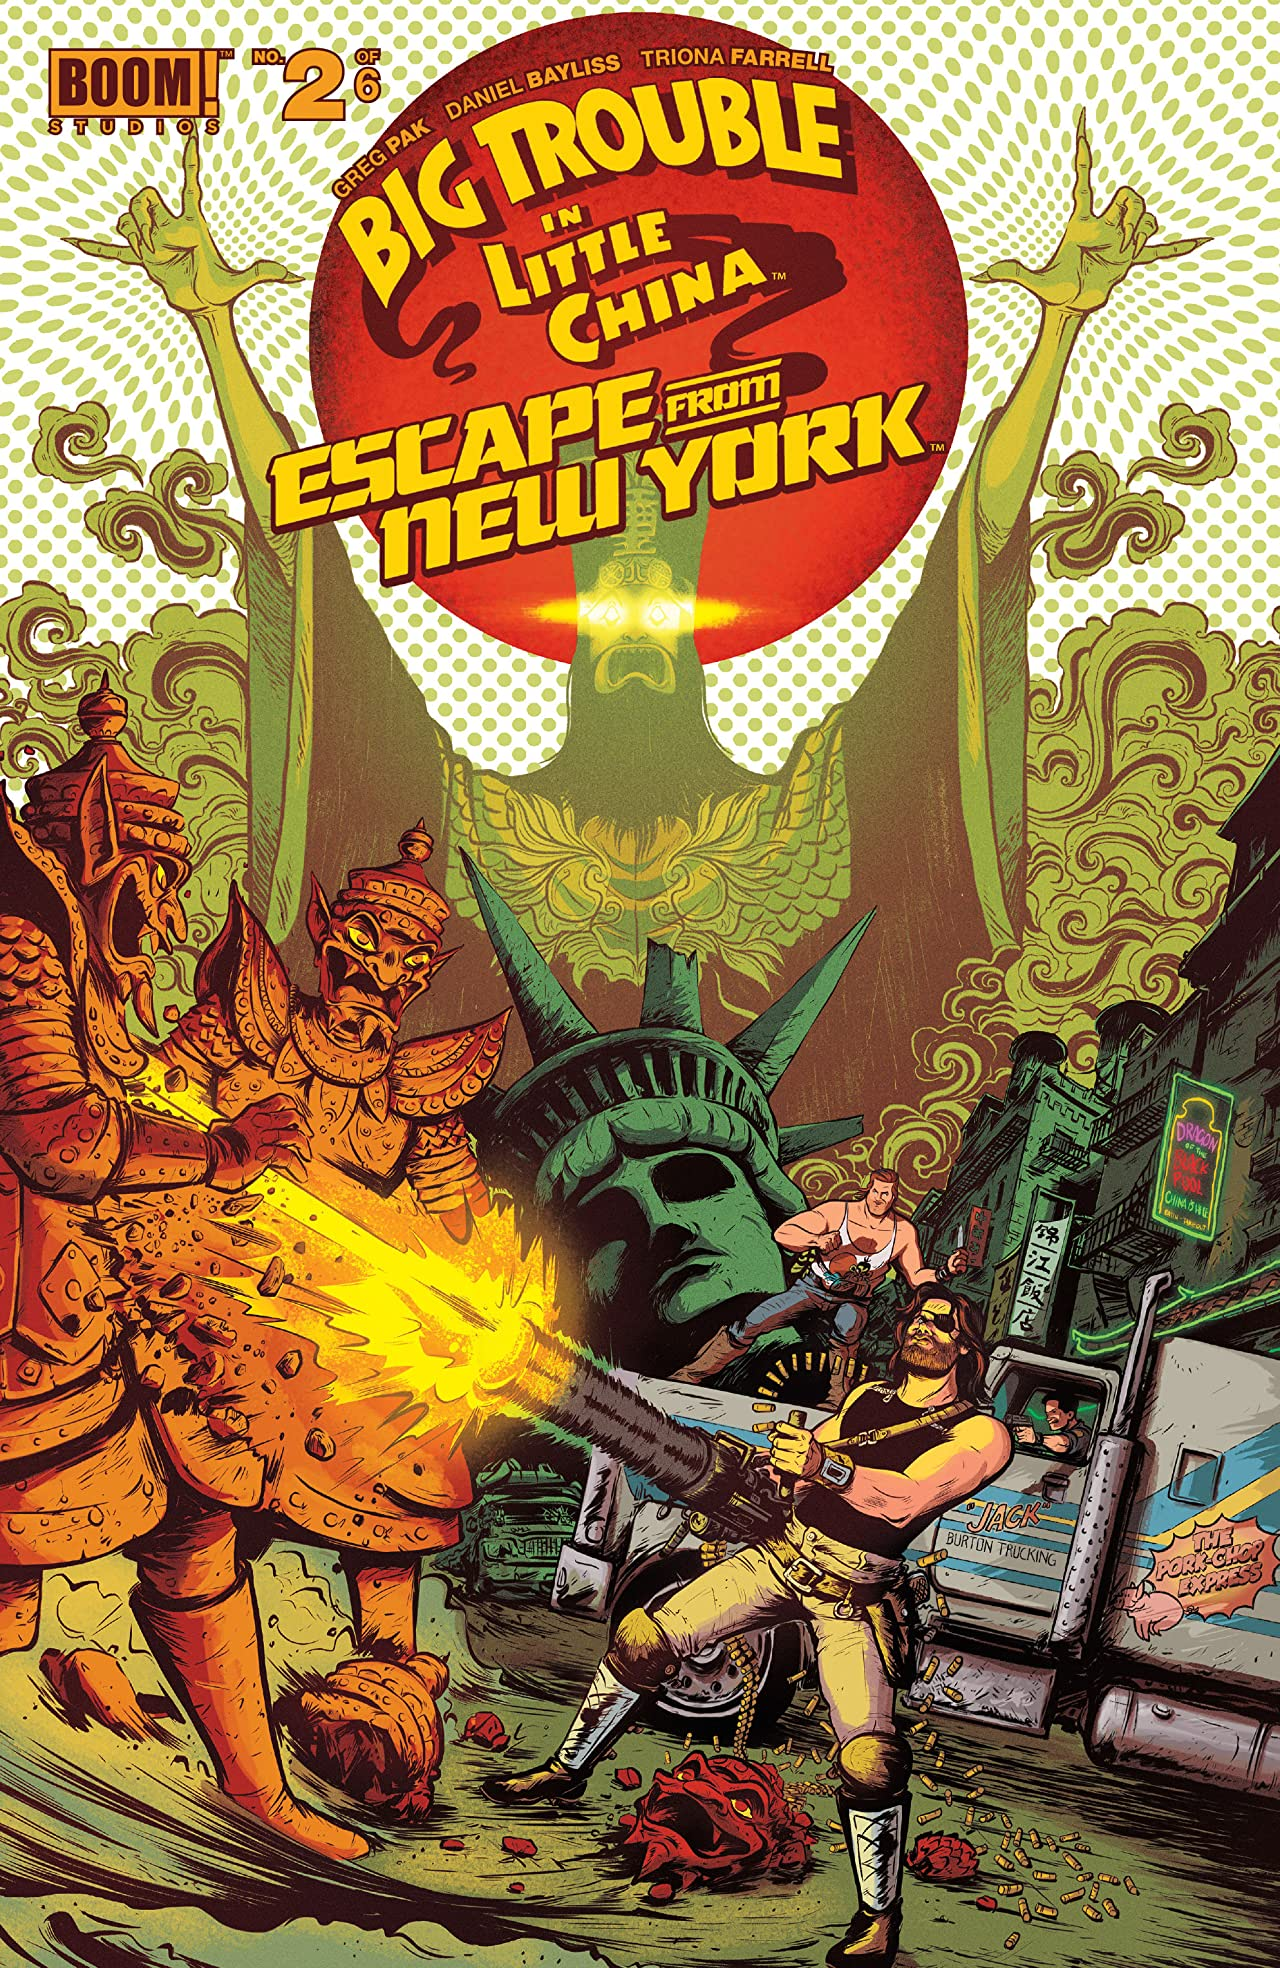 Big Trouble in Little China/Escape From New York #2 (of 6)